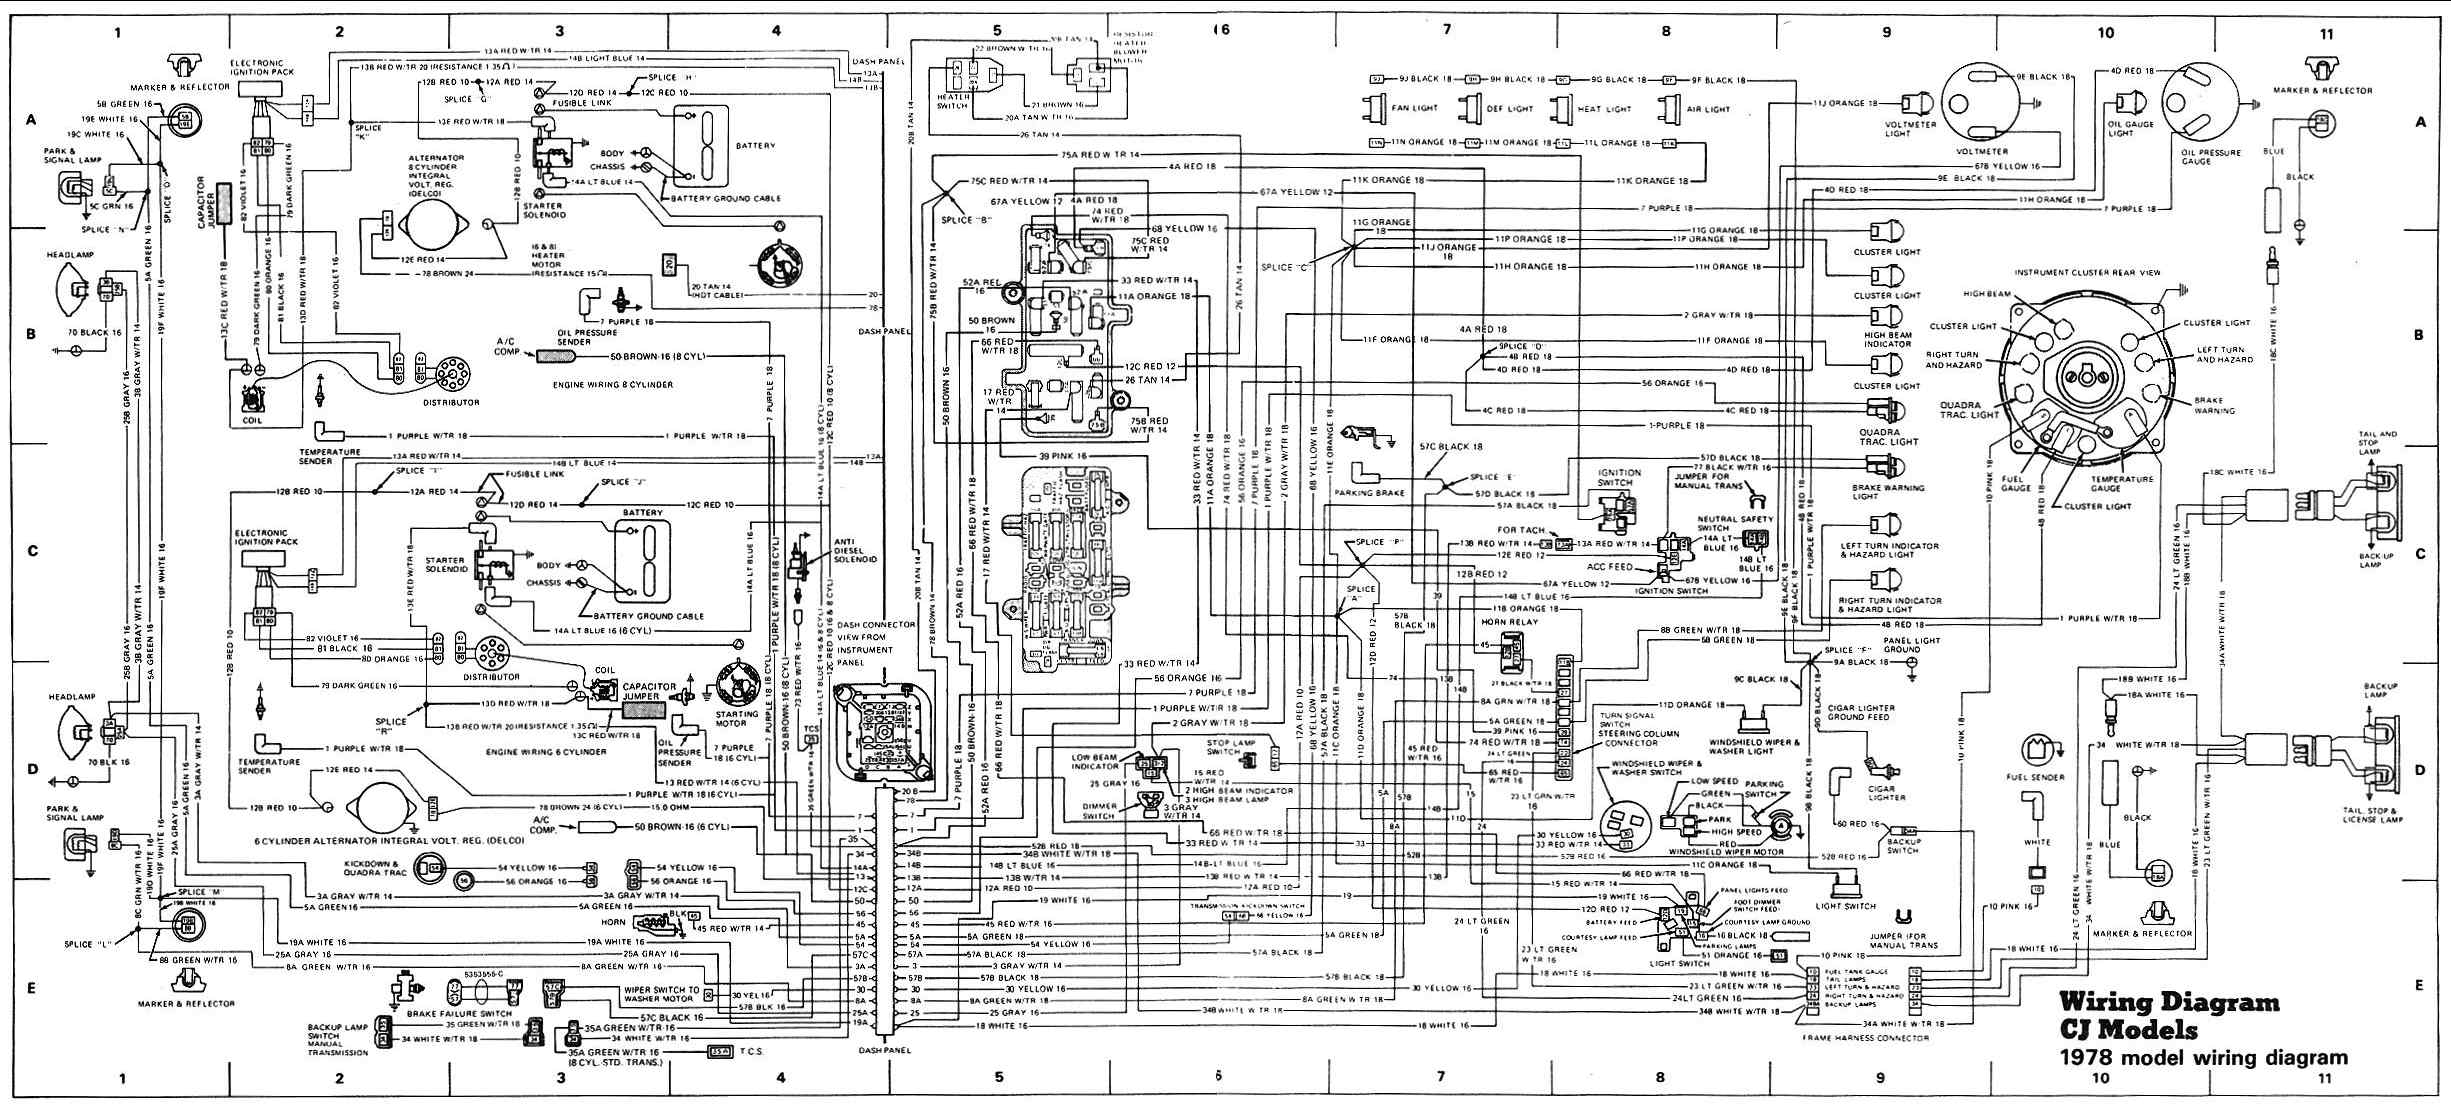 Unusual Jeepster Commando Wiring Diagram Photos - Electrical Circuit ...